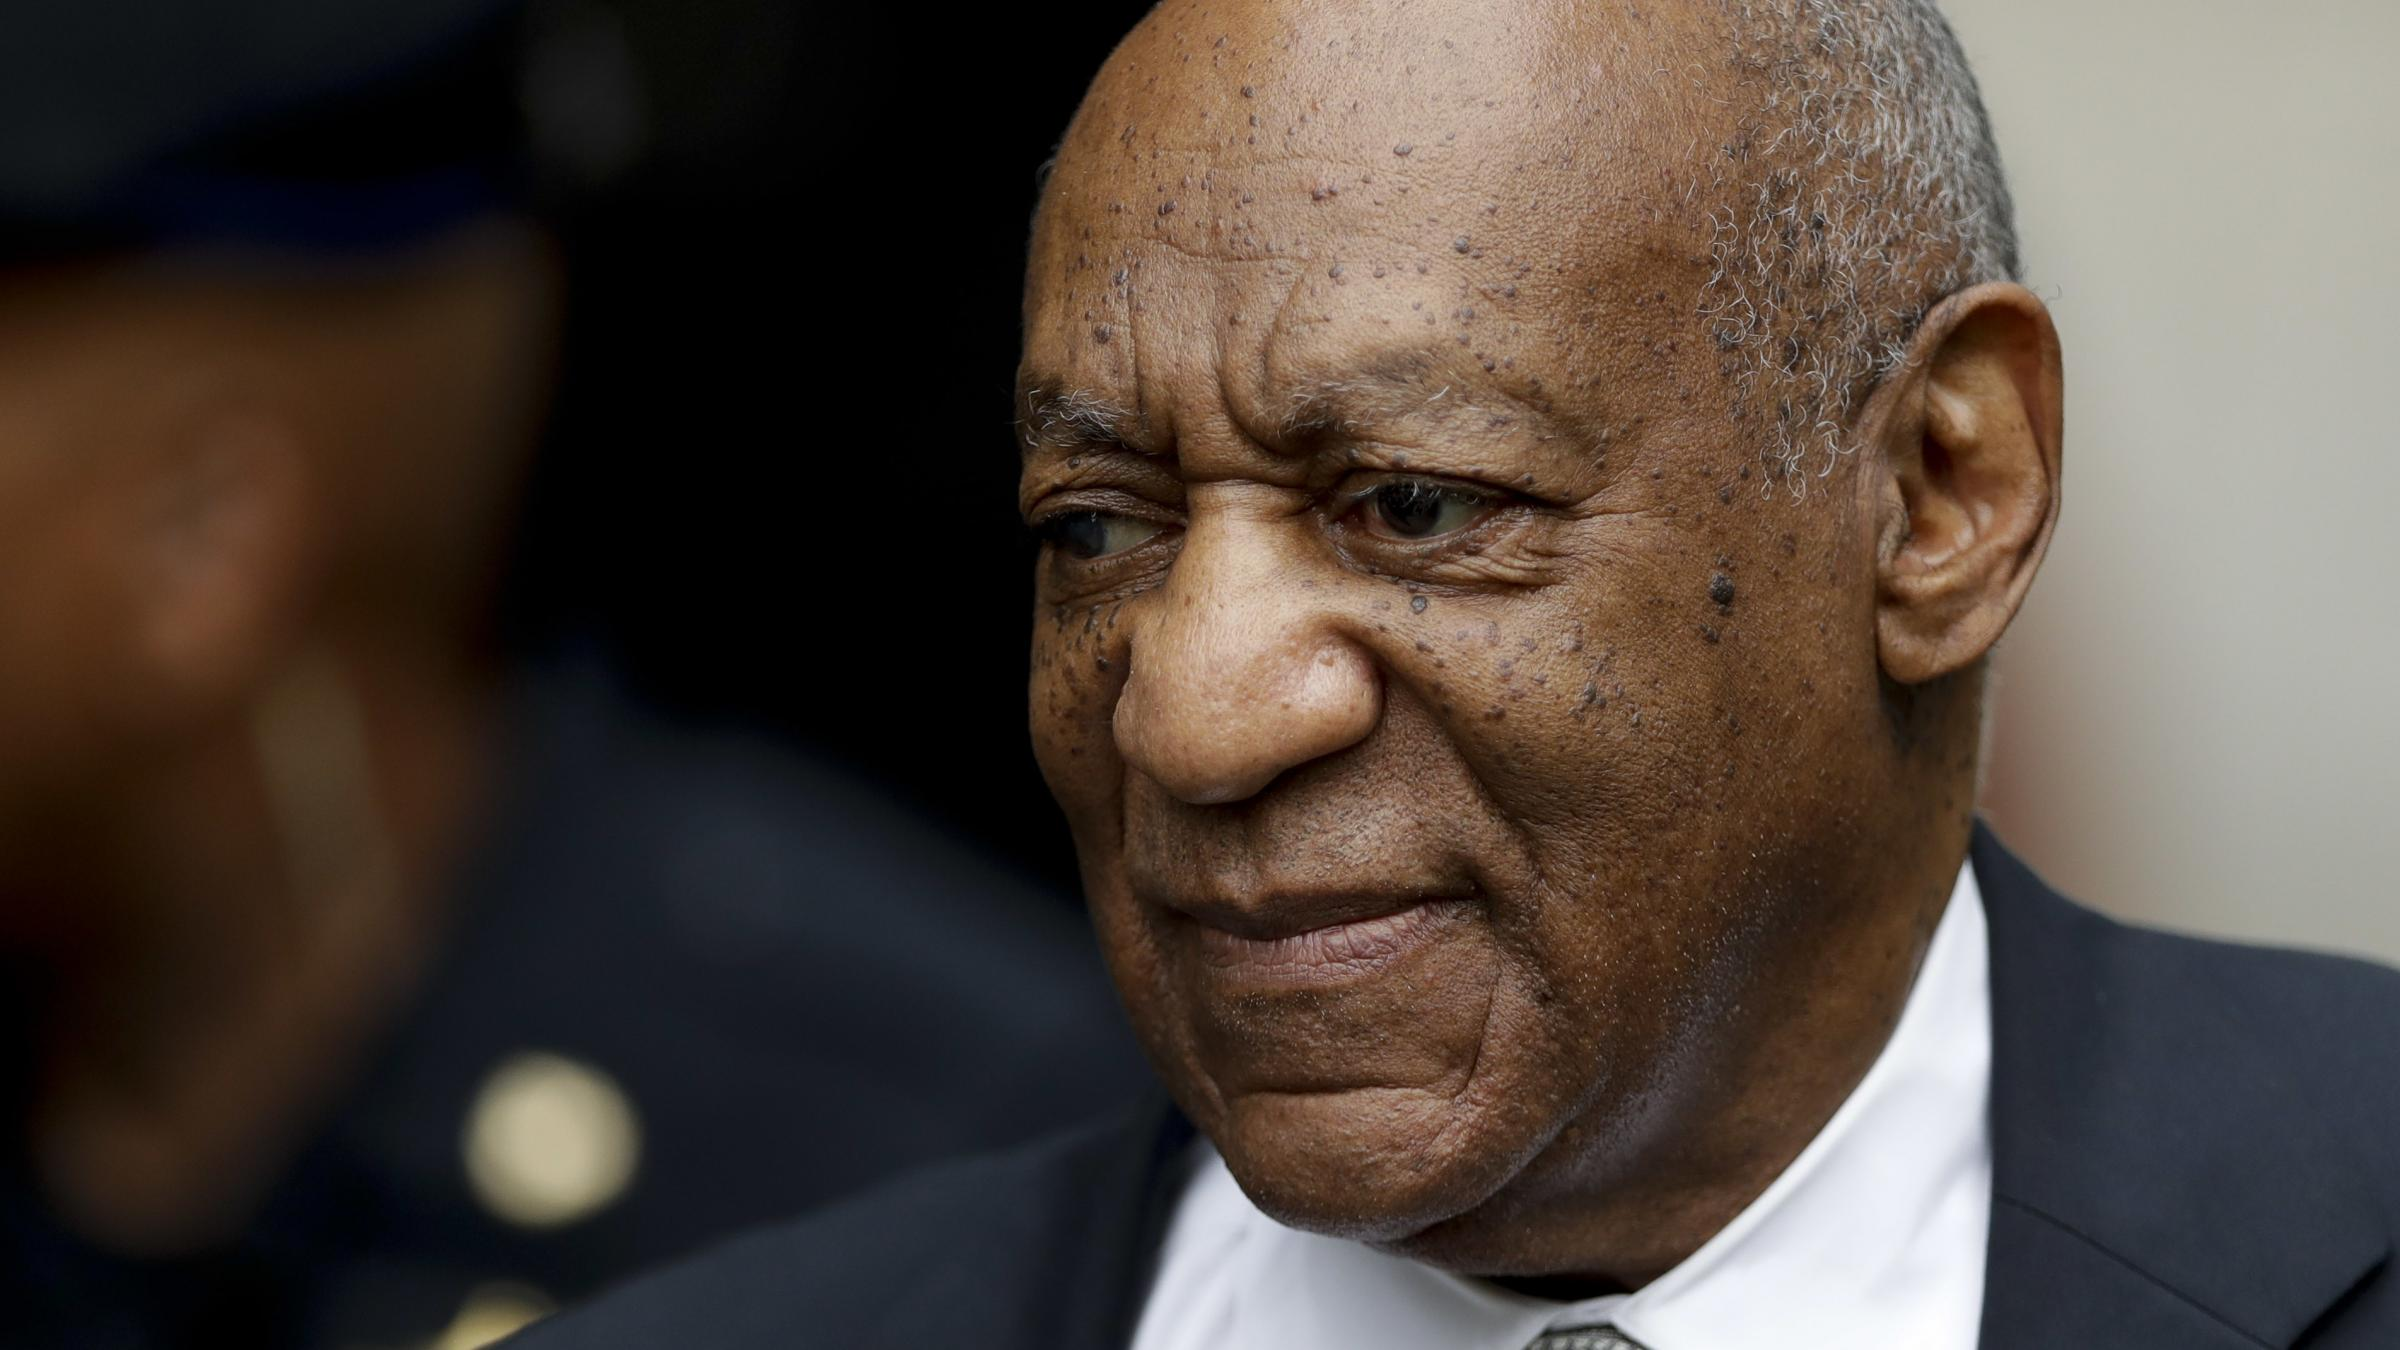 Cosby case ends in mistrial